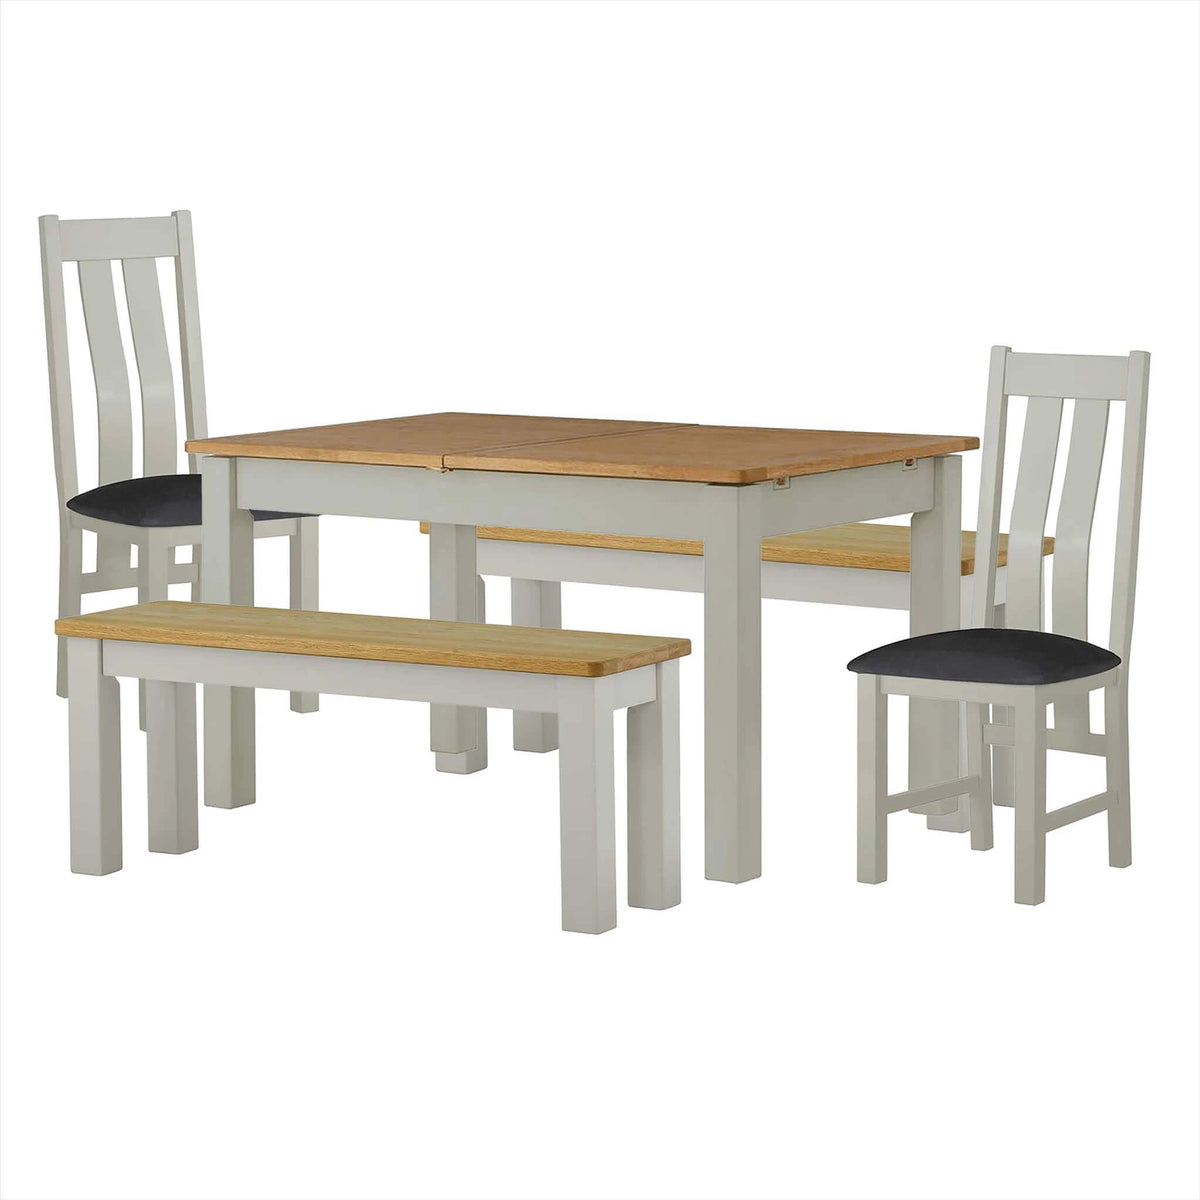 The Padstow Grey Wooden Extending Dining Table Set with 2 Benches and 2 Dining Chairs from Roseland Furniture